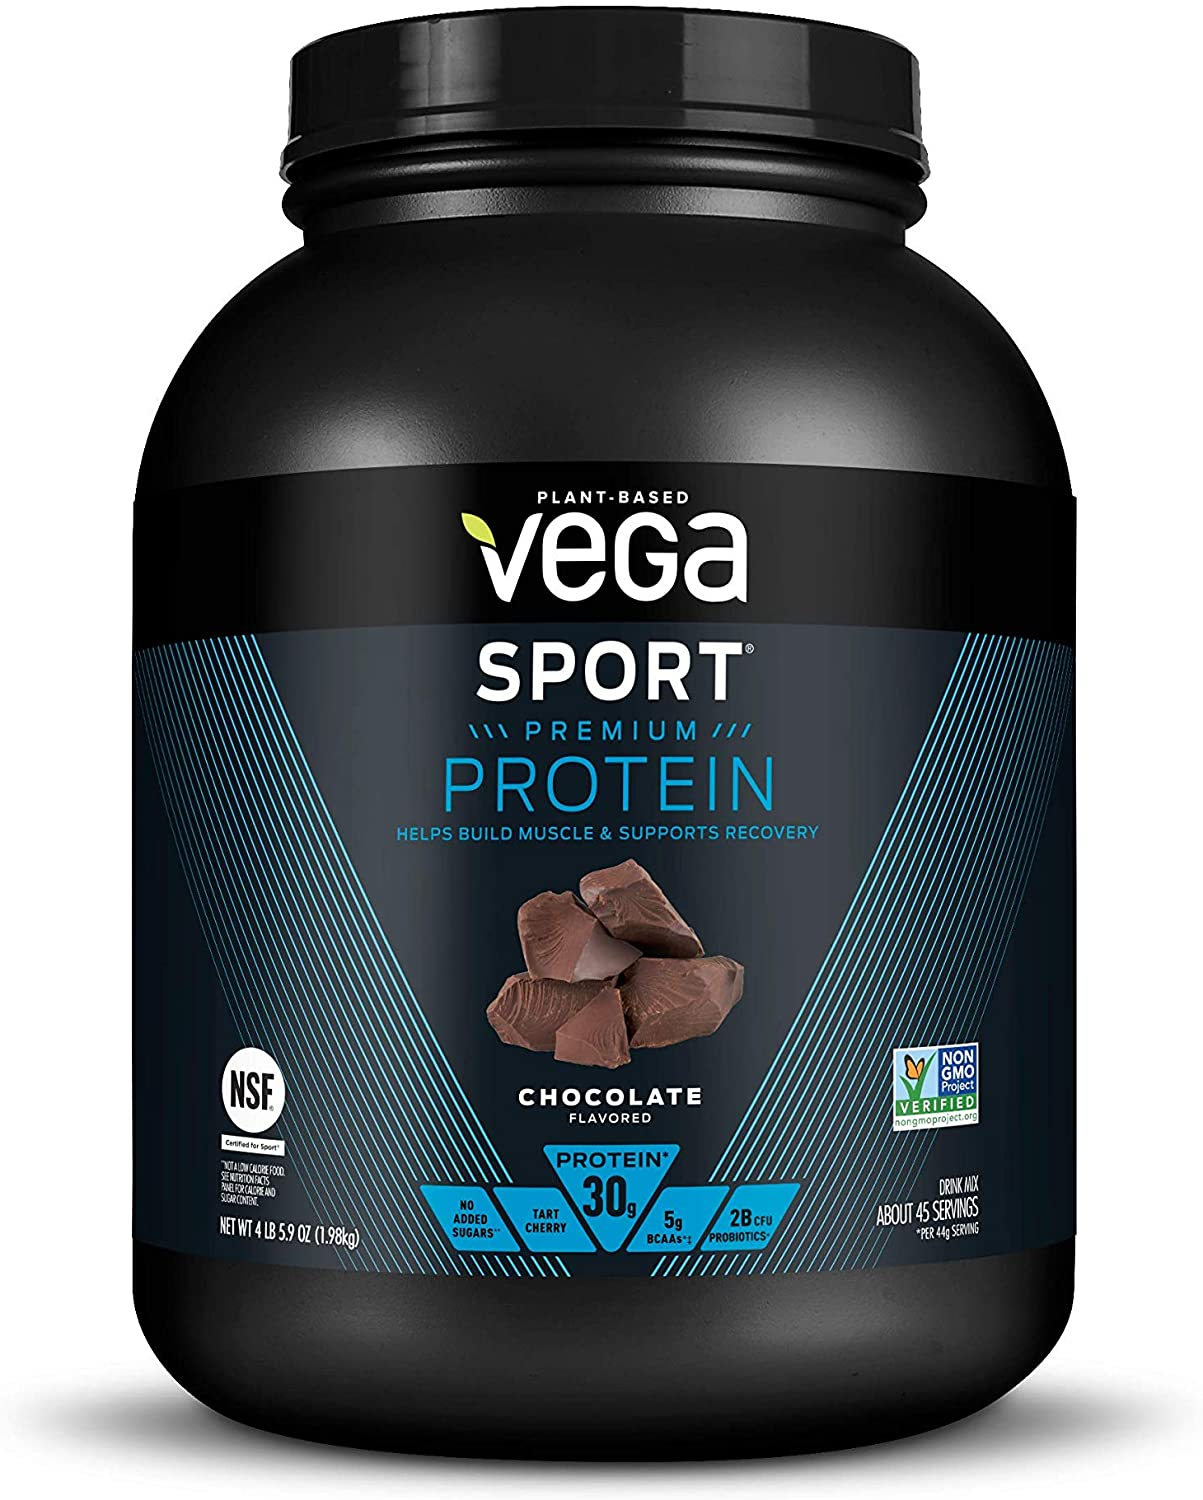 Vega Sport 4-Pound Premium Protein Powder, Chocolate